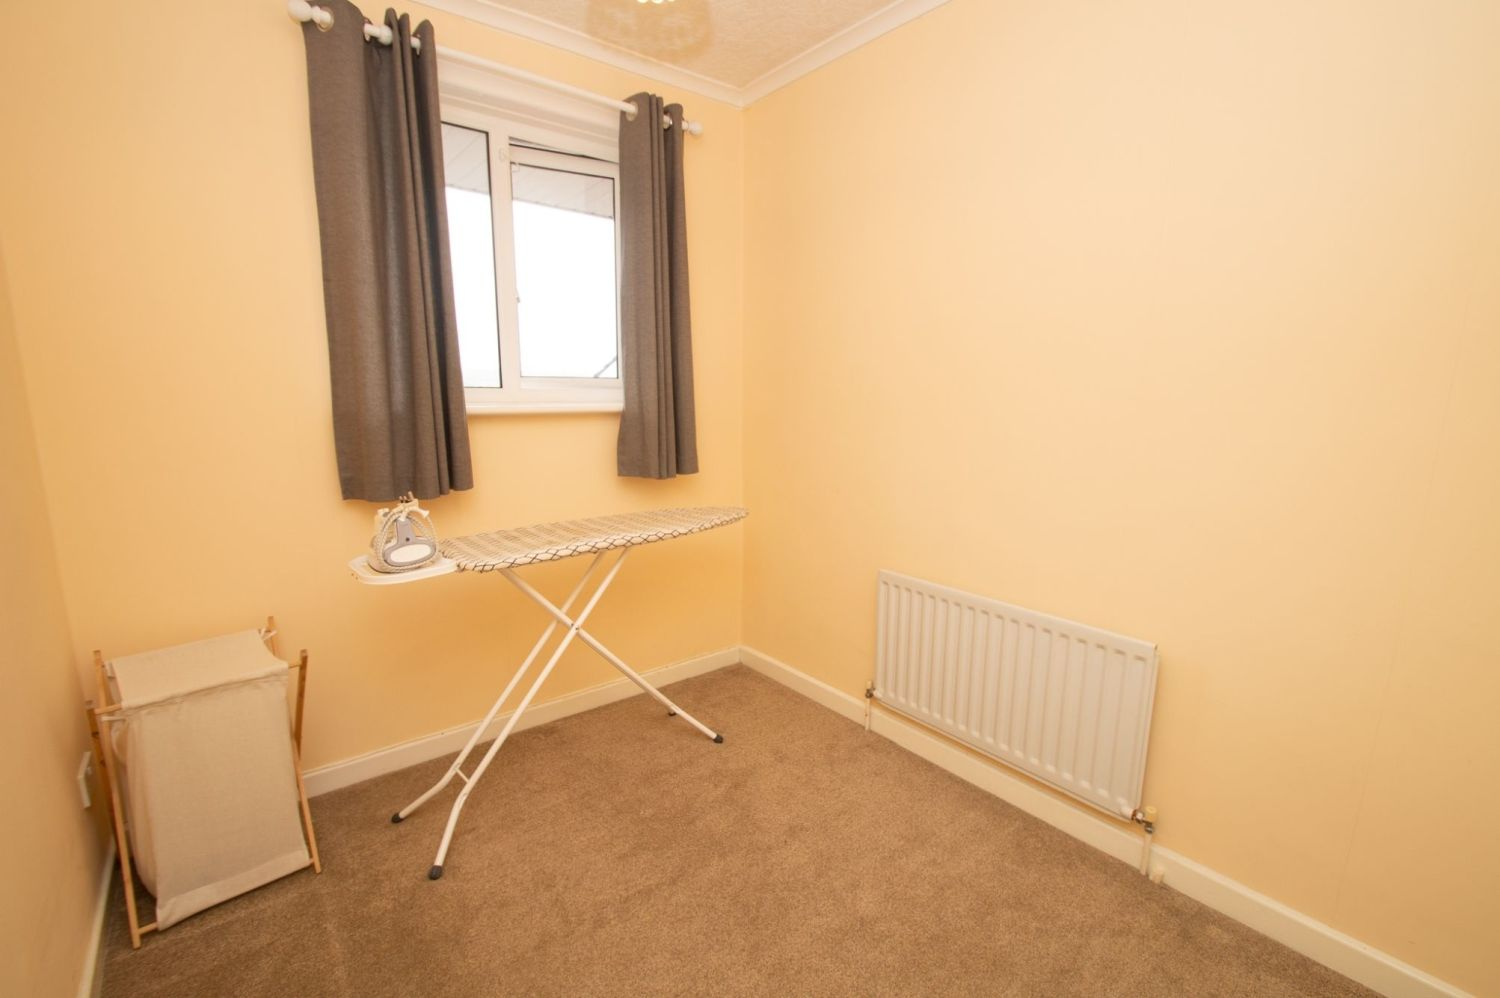 3 bed semi-detached for sale in Vicarage Crescent, Redditch  - Property Image 10